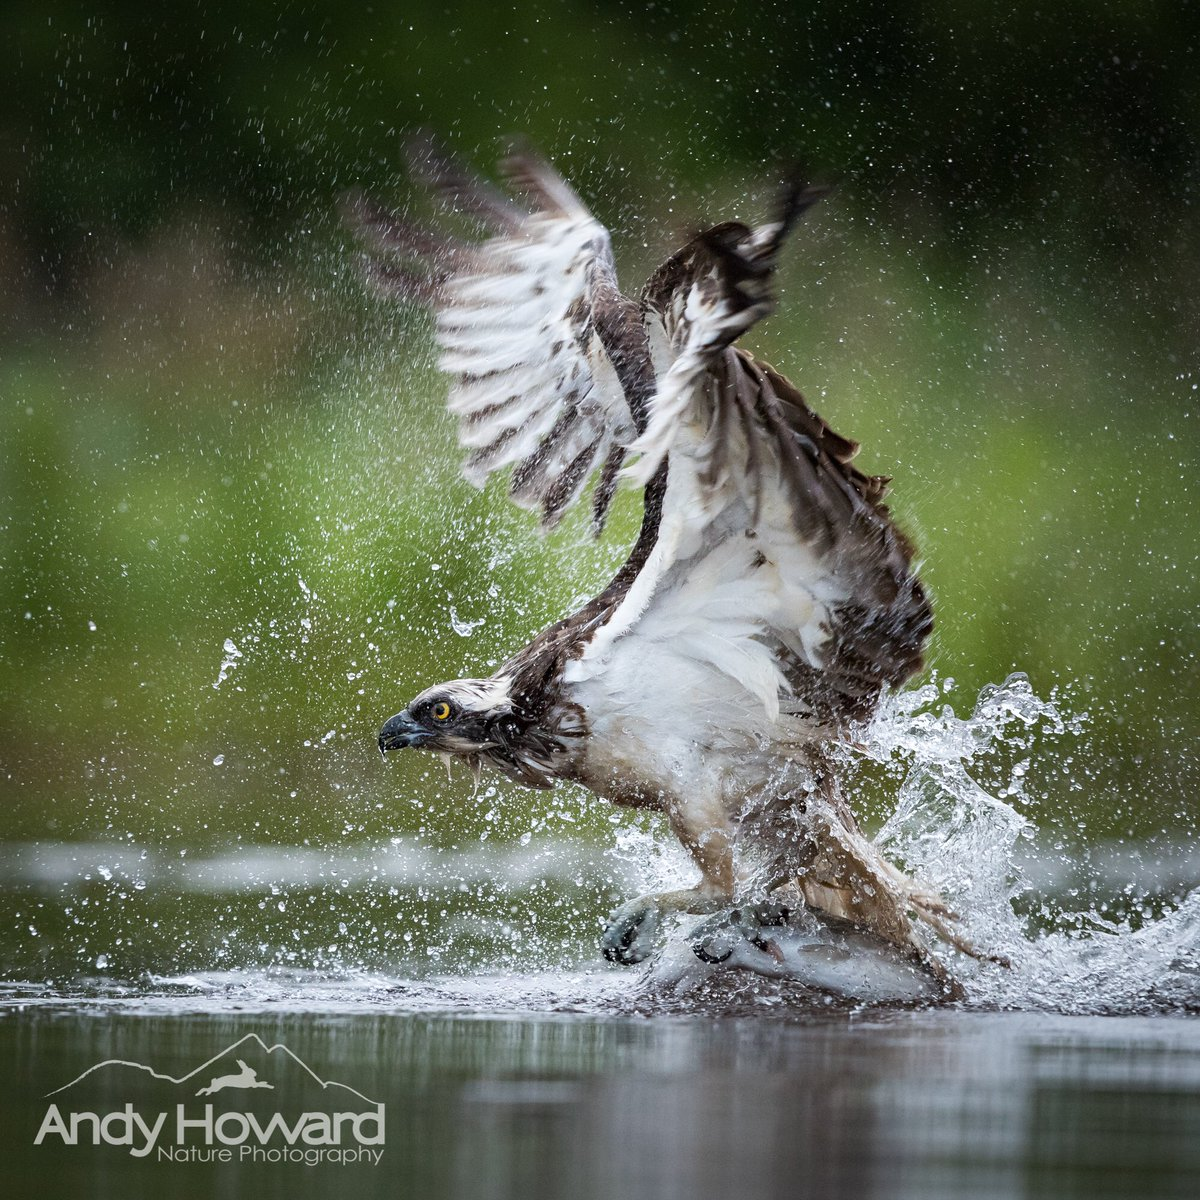 My Osprey Masterclasses for 2020 are almost full! One place remains, don't delay!  @Rothiemurchus #CarpeDiem <br>http://pic.twitter.com/pOWjwHLR2y